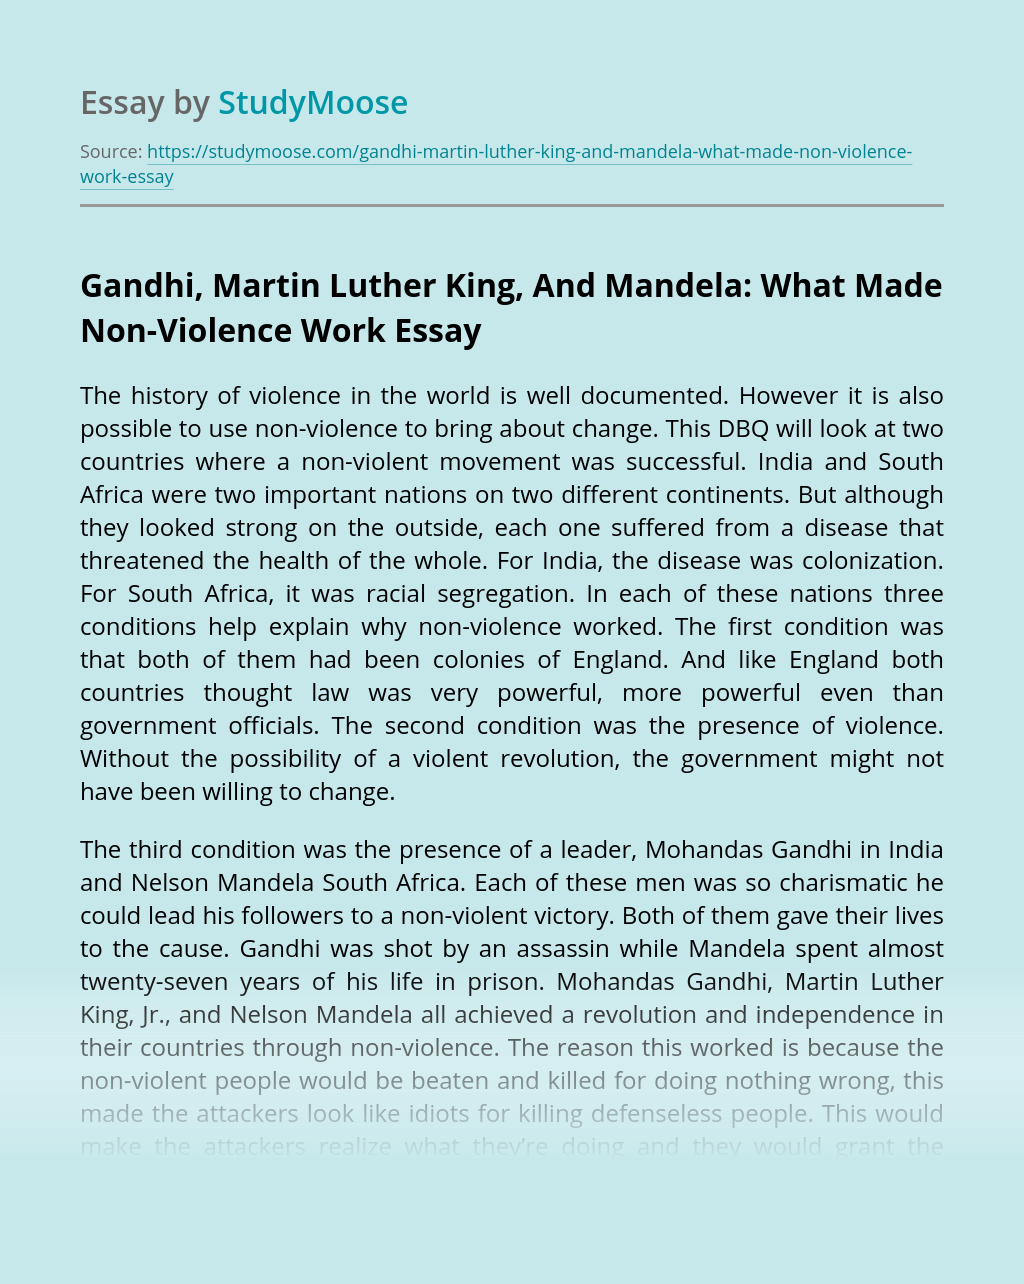 Gandhi, Martin Luther King, And Mandela: What Made Non-Violence Work